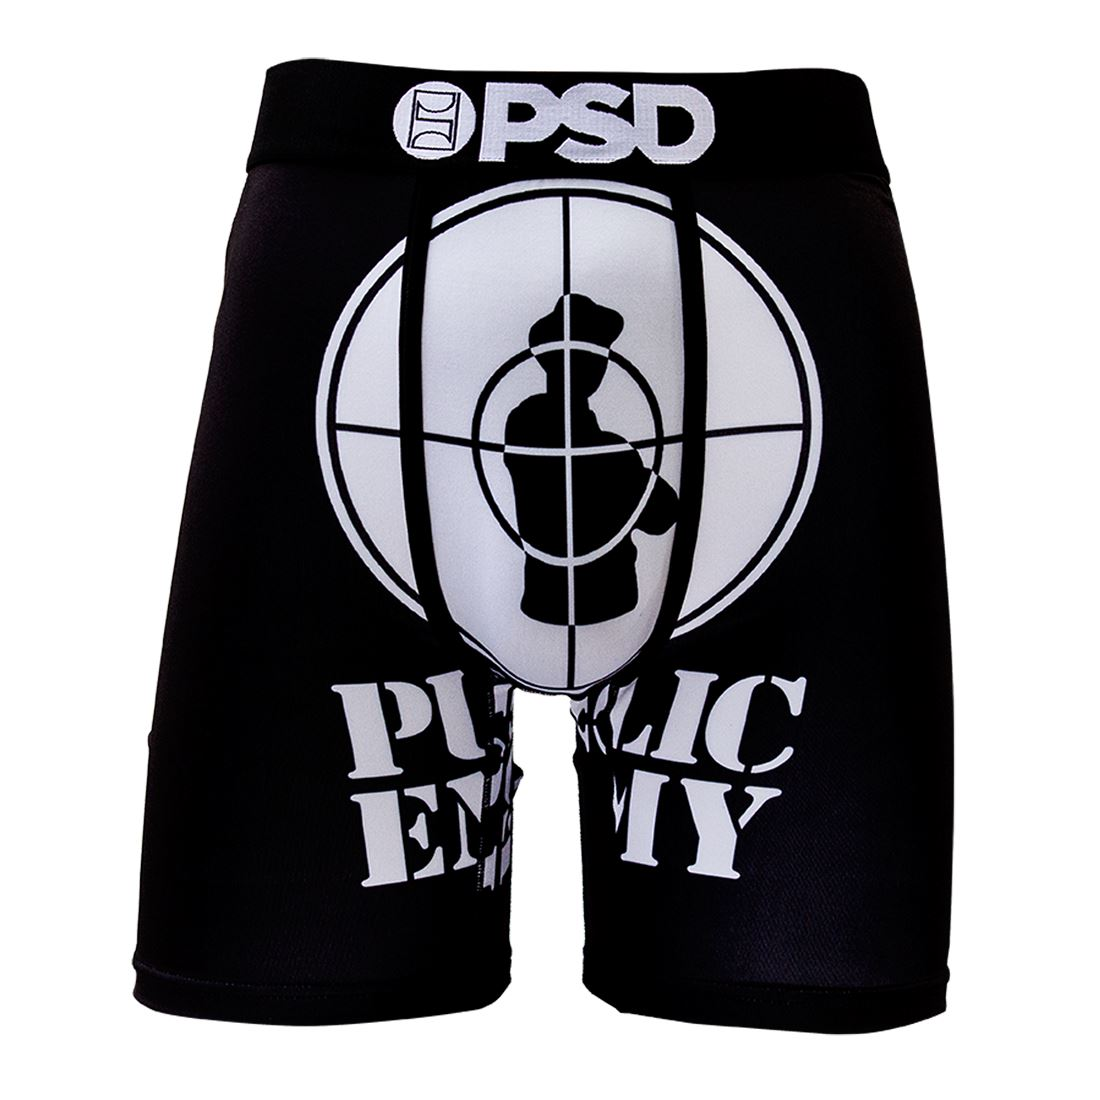 PSD Sports Underwear - Public Enemy